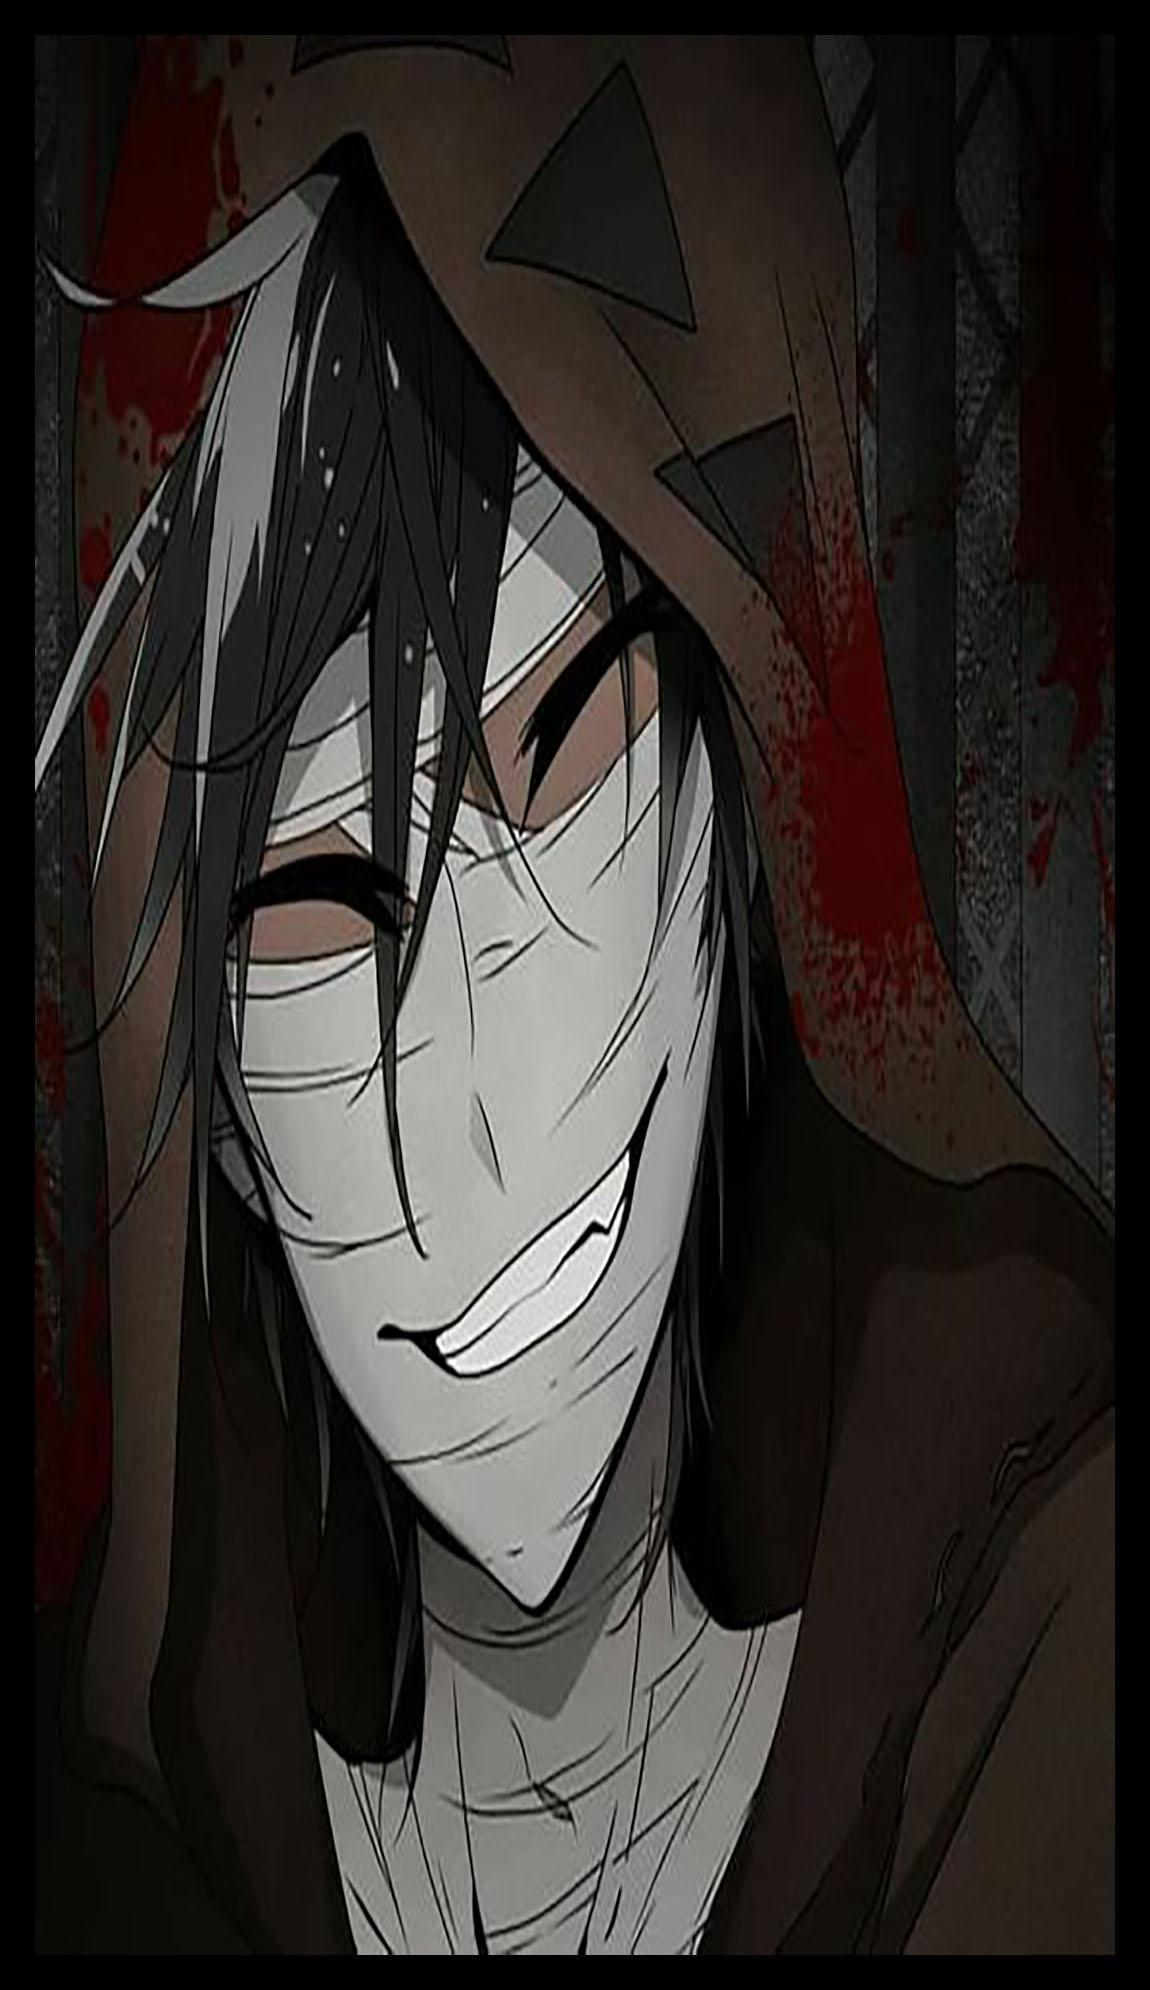 Jeff The Killer Wallpaper Hd 2019 For Android Apk Download